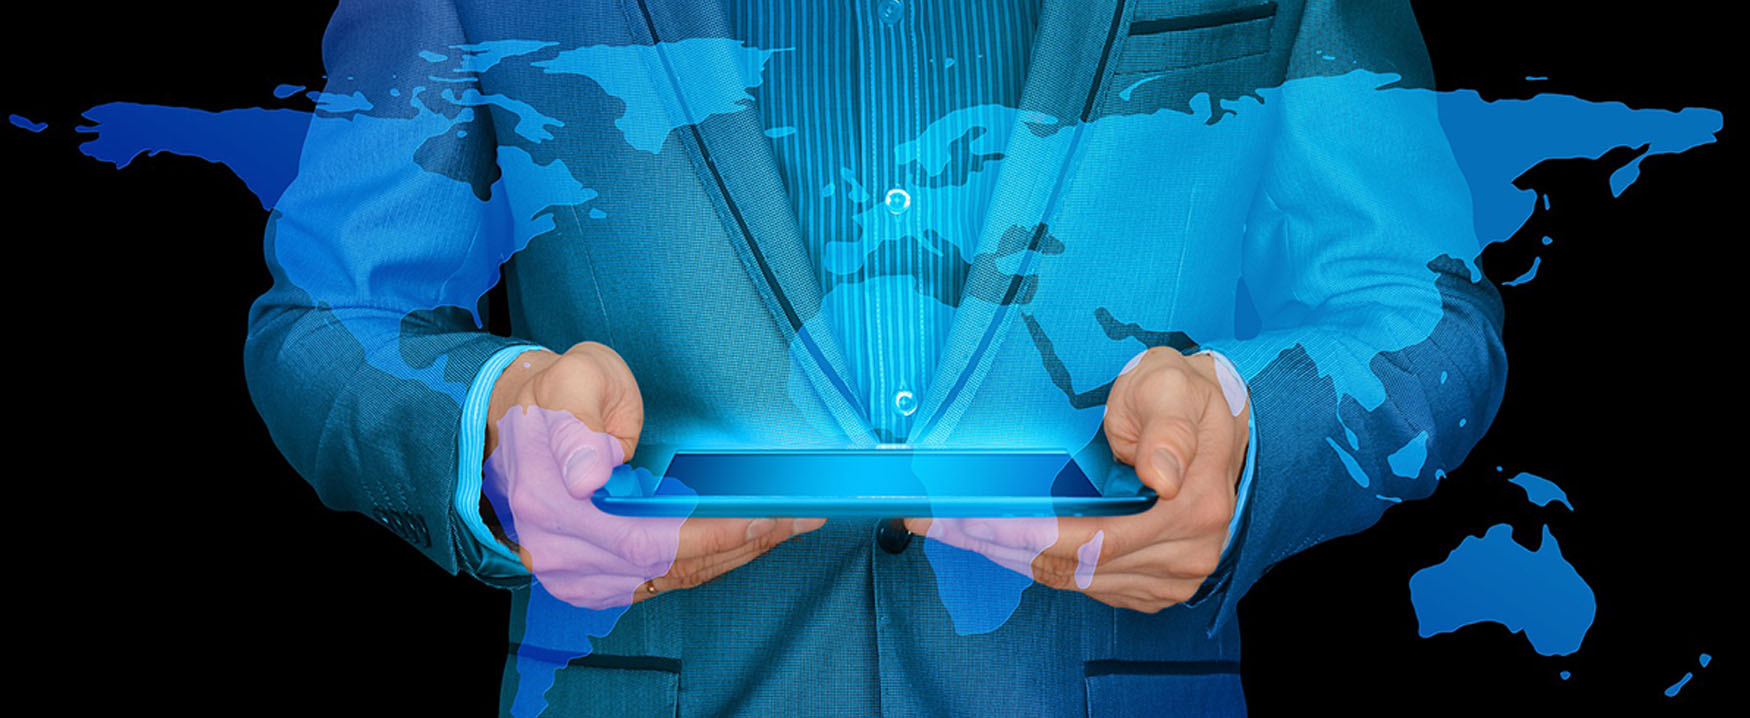 The image depicts a person holding a tablet computer, with an overlay of the world map superimposed in a three-dimensional effect.